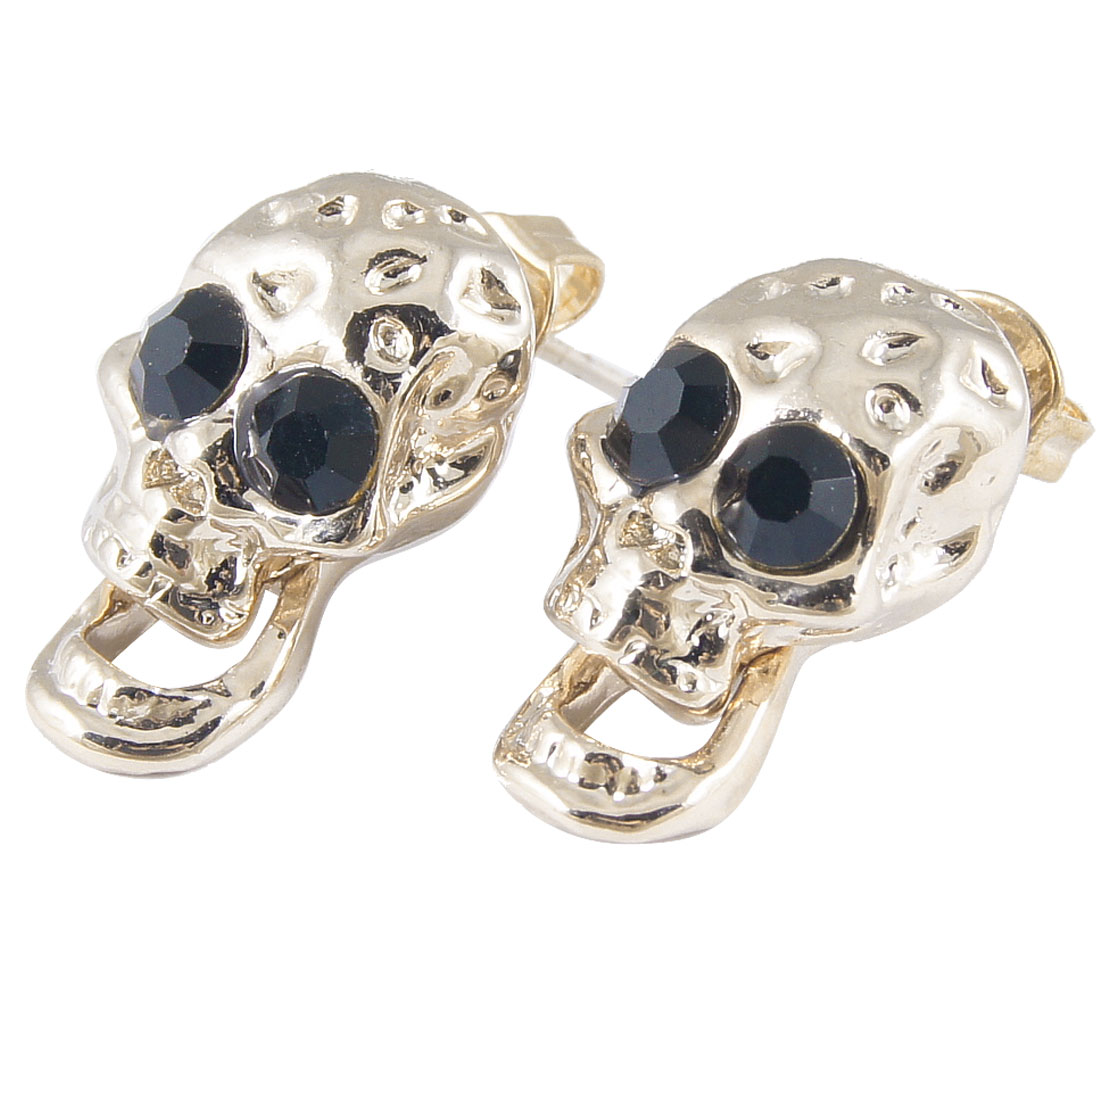 Pair Girls Skull Pendant Black Rhinestone Eye Decor Screw Back Pierced Stud Earrings Copper Tone